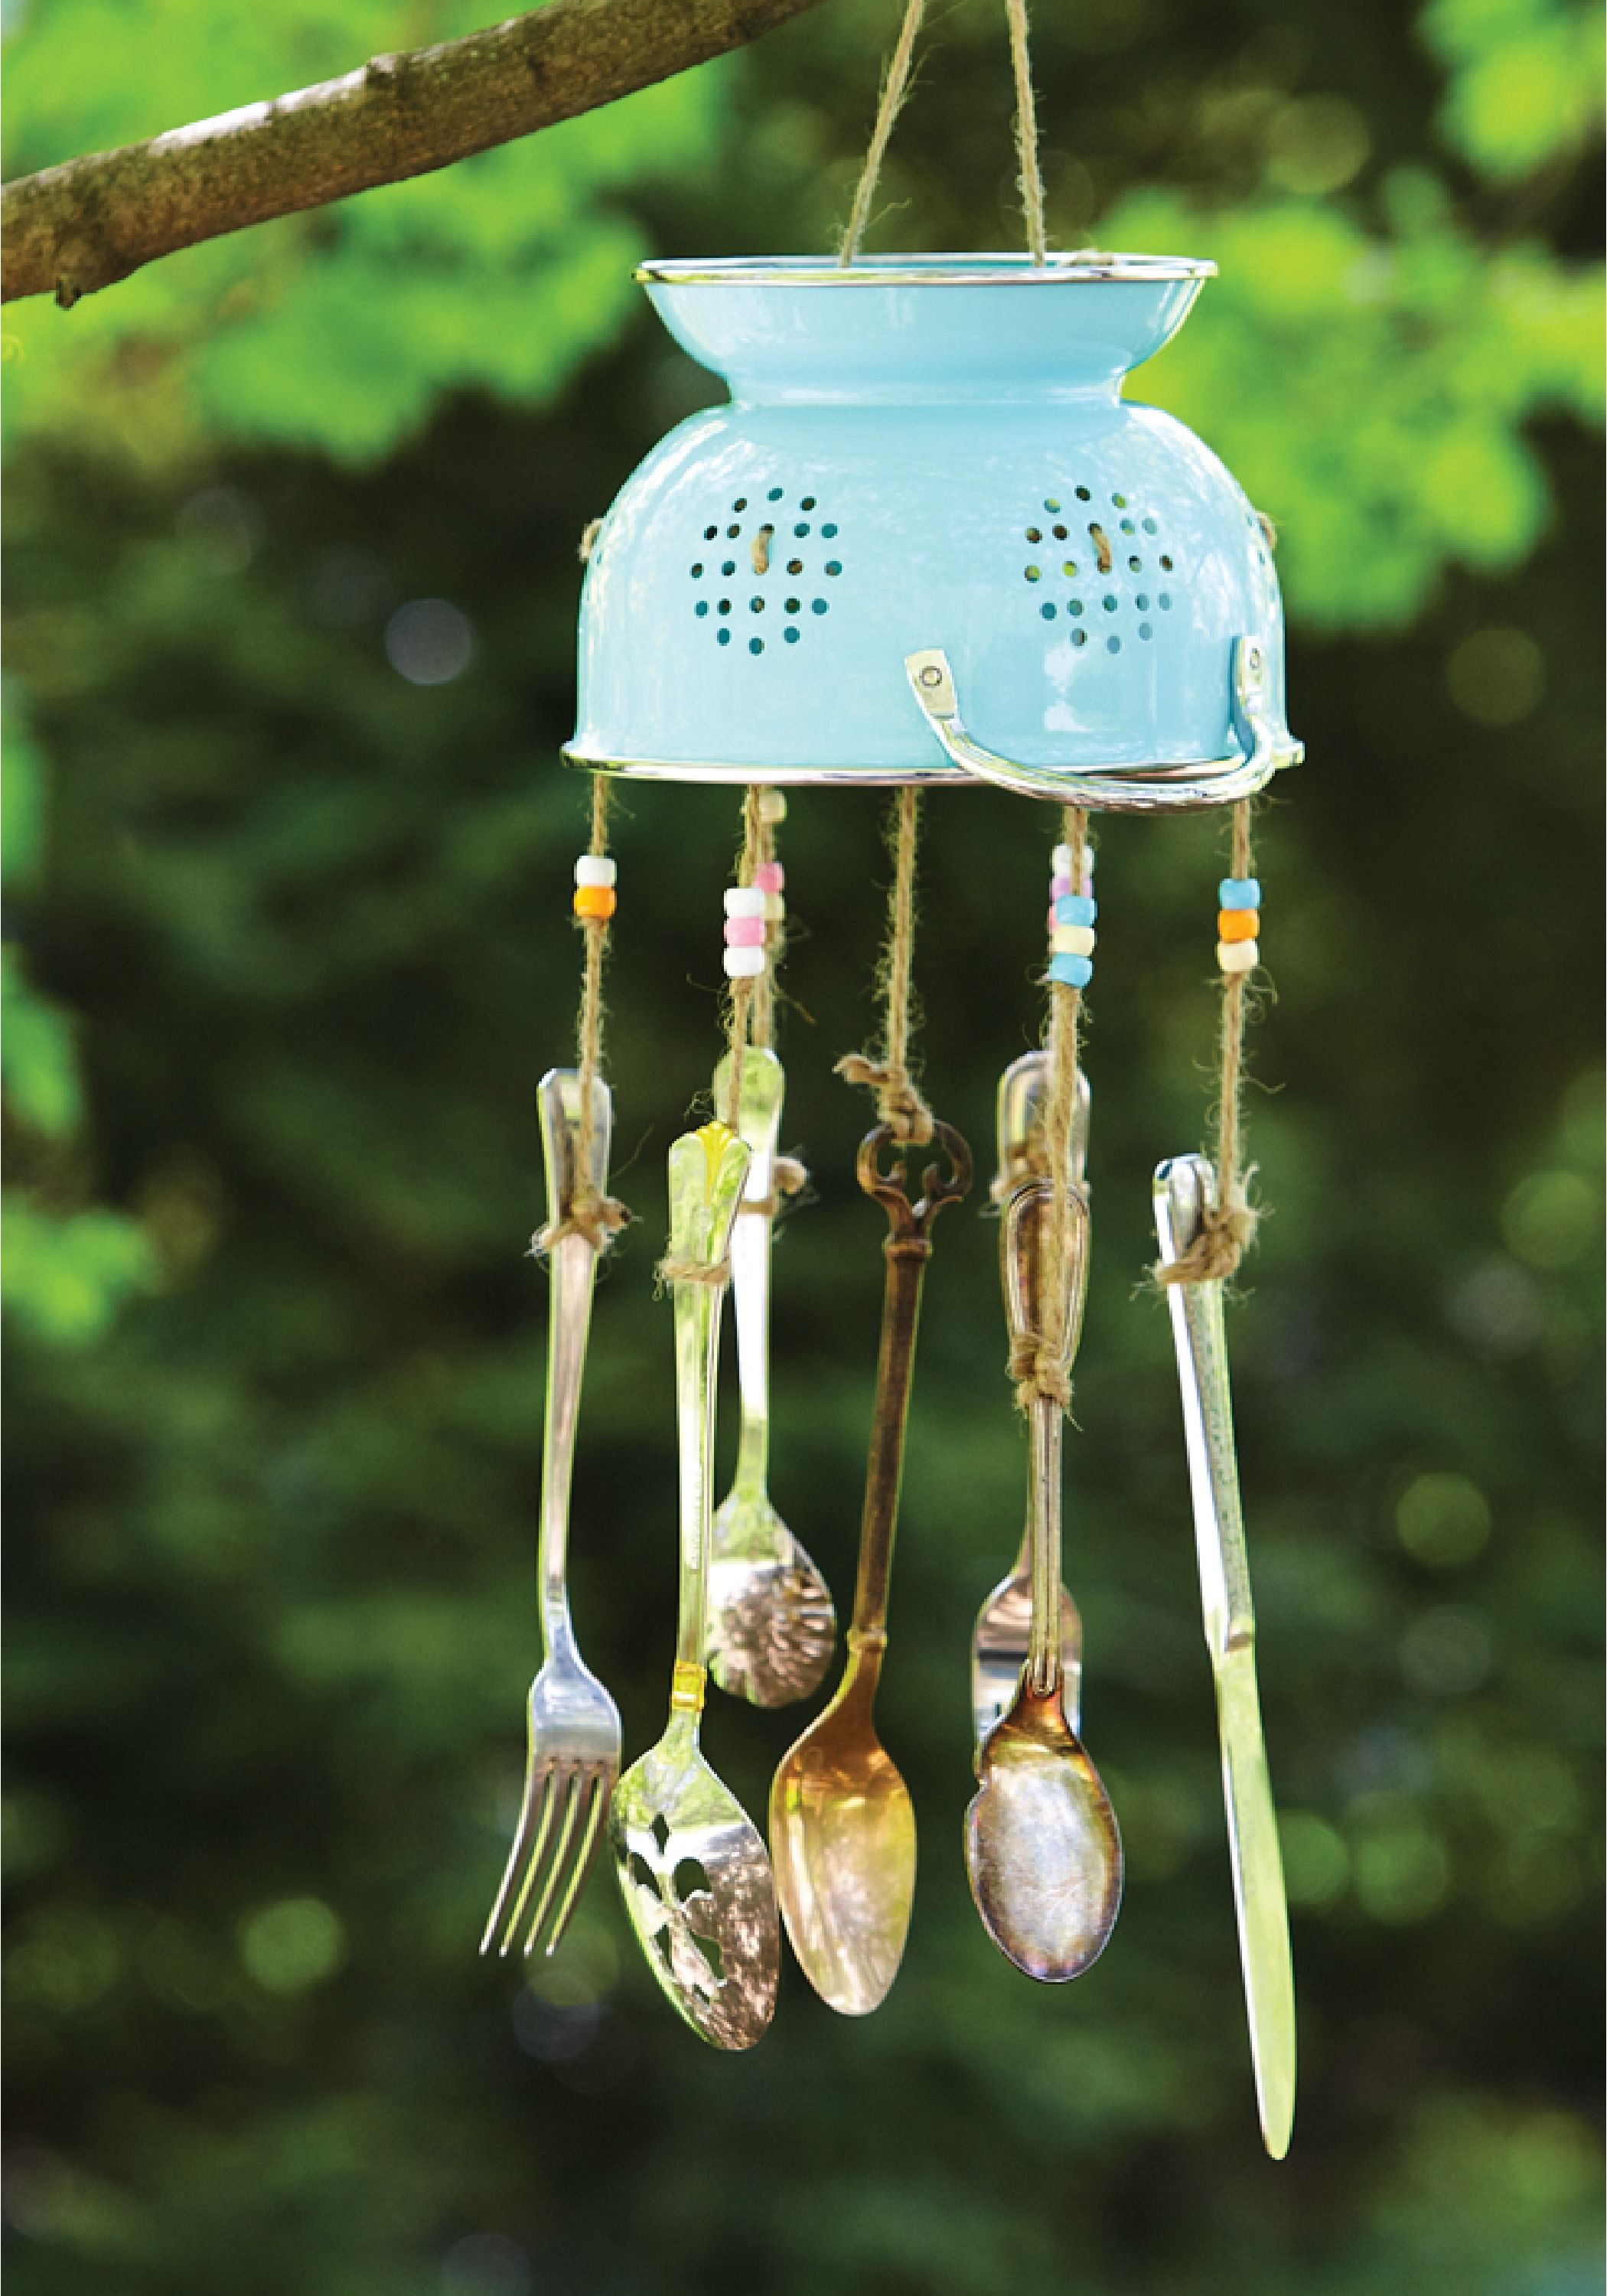 - repurposed silverware wind chime pg everyday pg everyday spoon wind chimes 1 - Rendere unico lo spazio outdoor